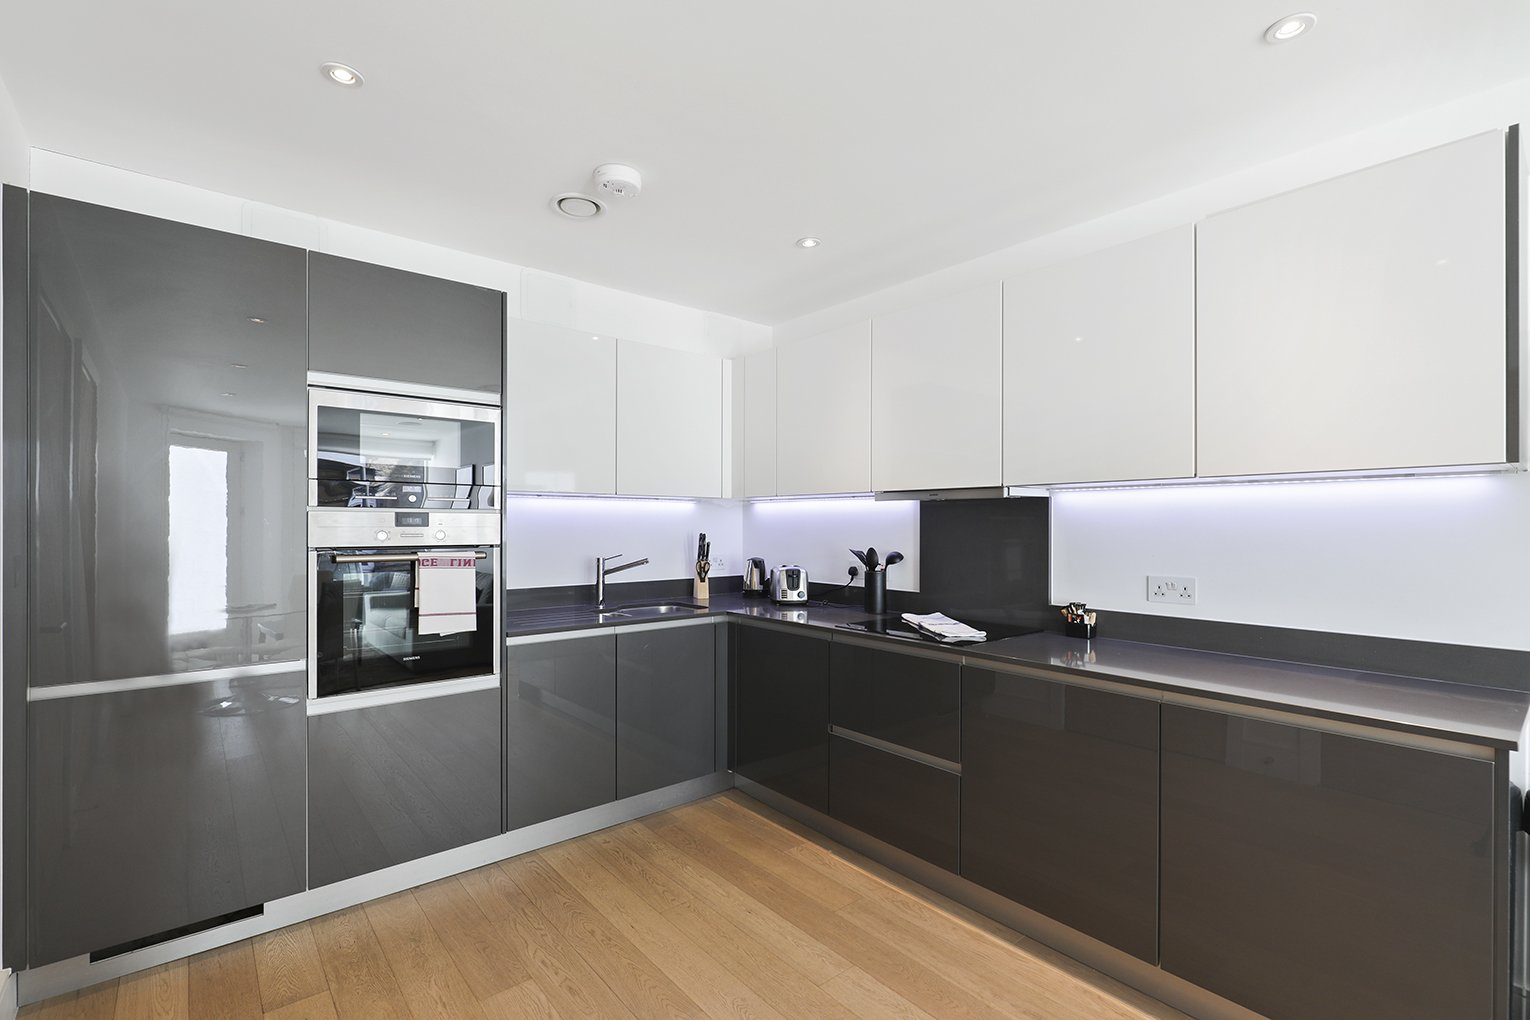 The Yard Corporate Apartment, Camden -London available now   Book The Yard Executive Apartments  Air Conditioning   free wifi   Private balcony  0208 6913920  Urban Stay